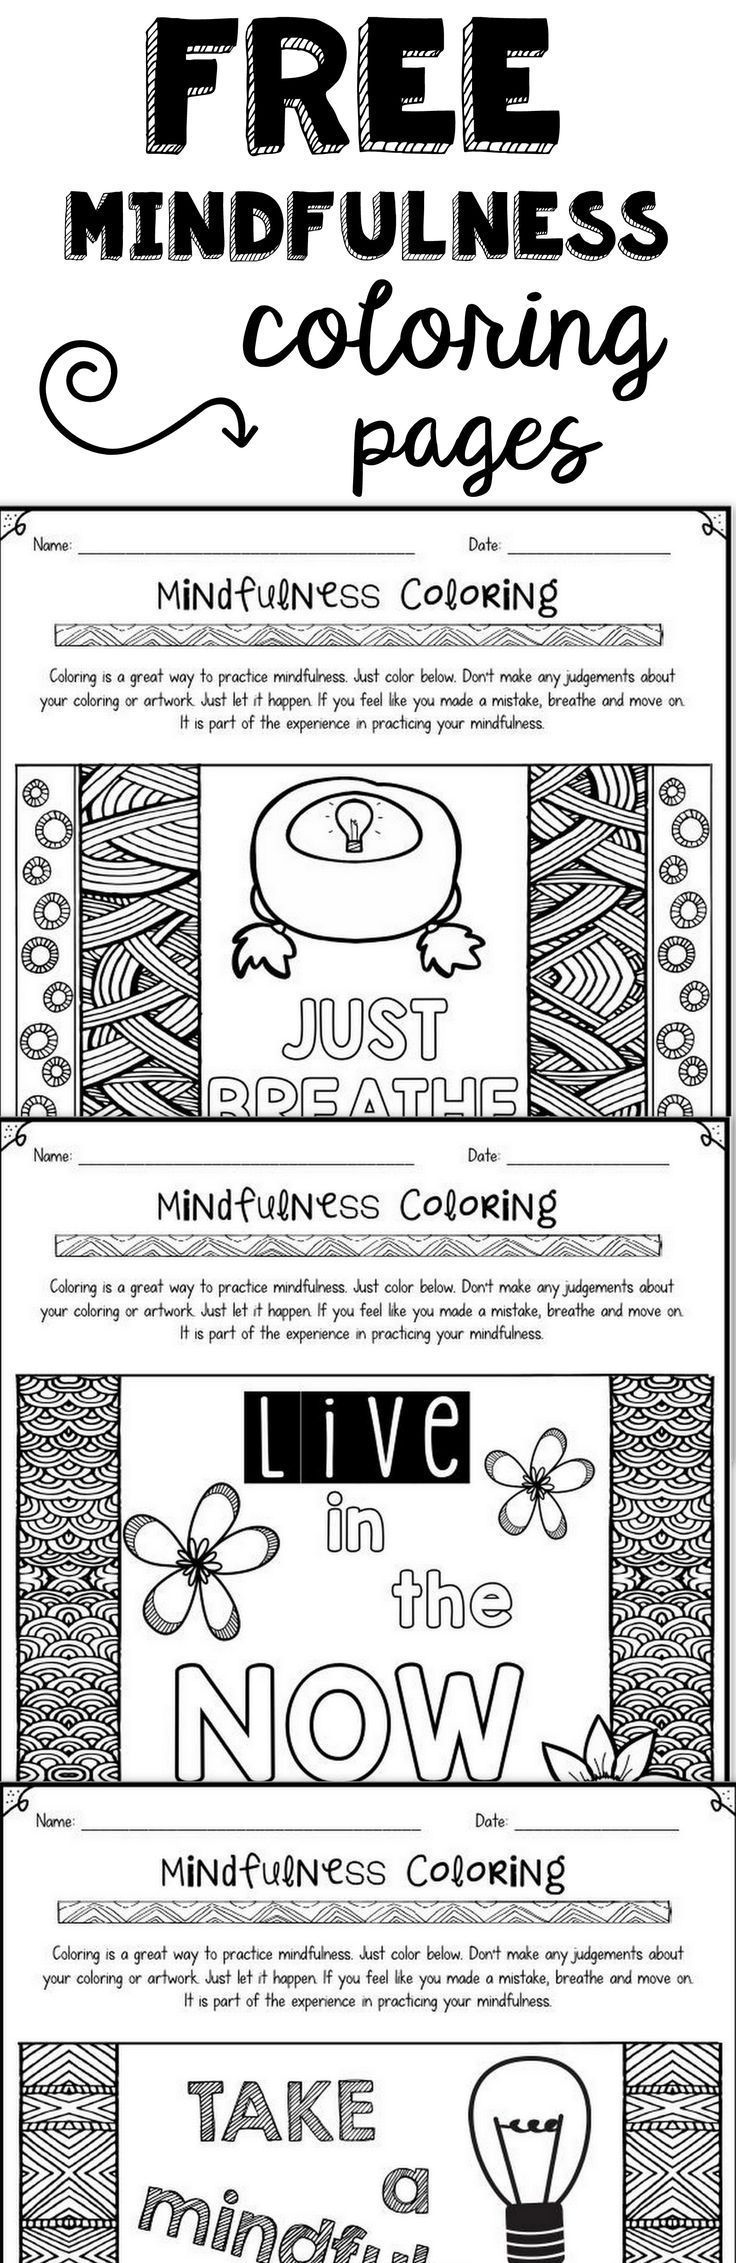 FREE mindfulness coloring pages to help with relaxation and positive thinking